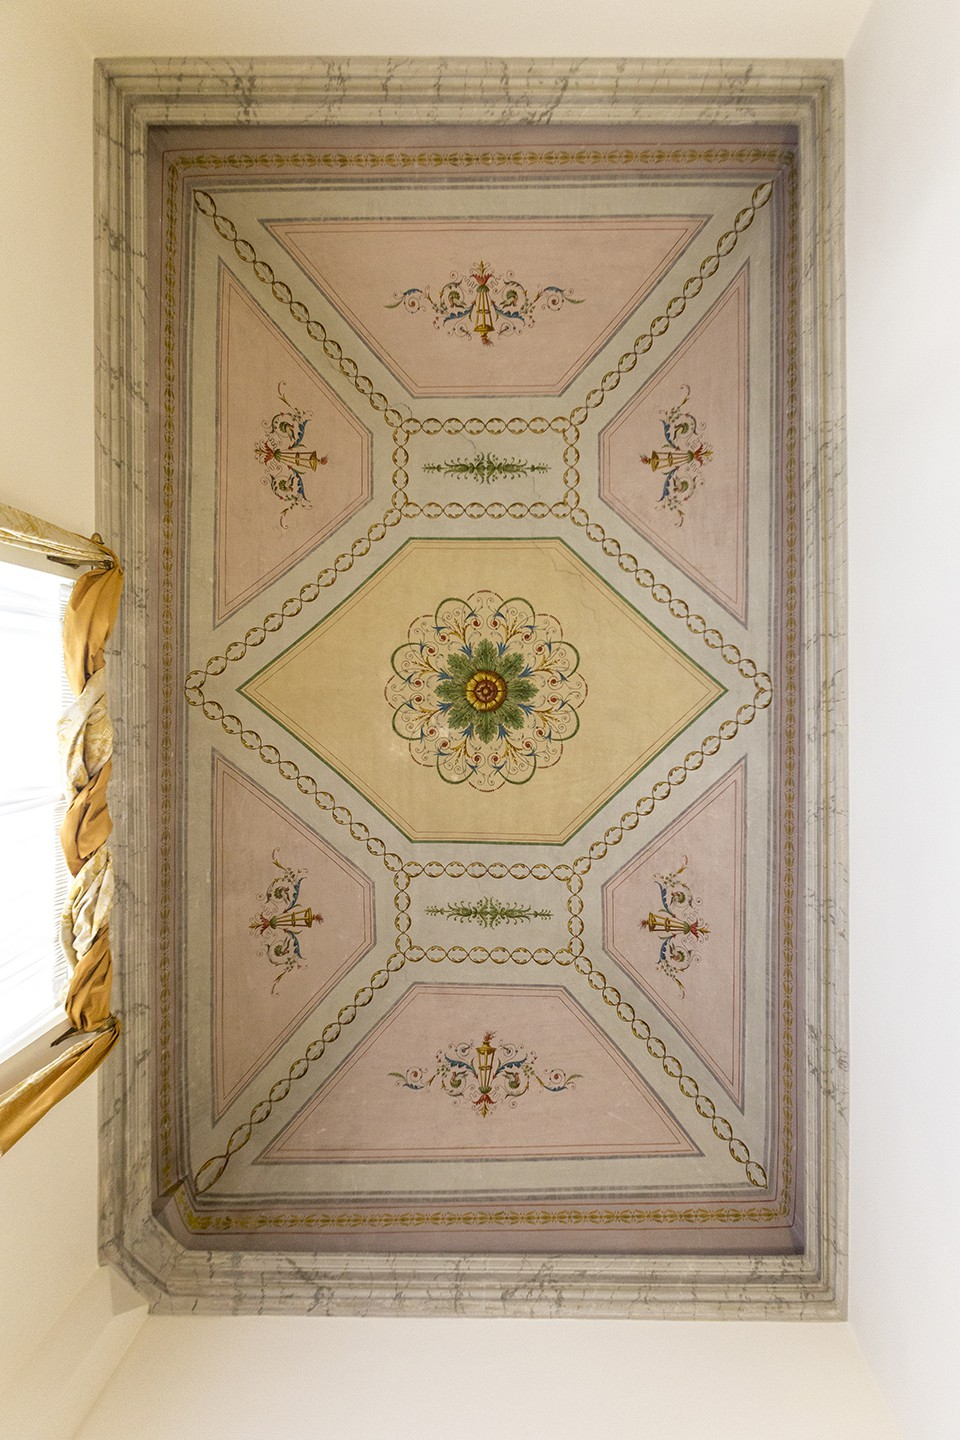 Hotel-Eitch-Borromini-Roma-affresco-9423